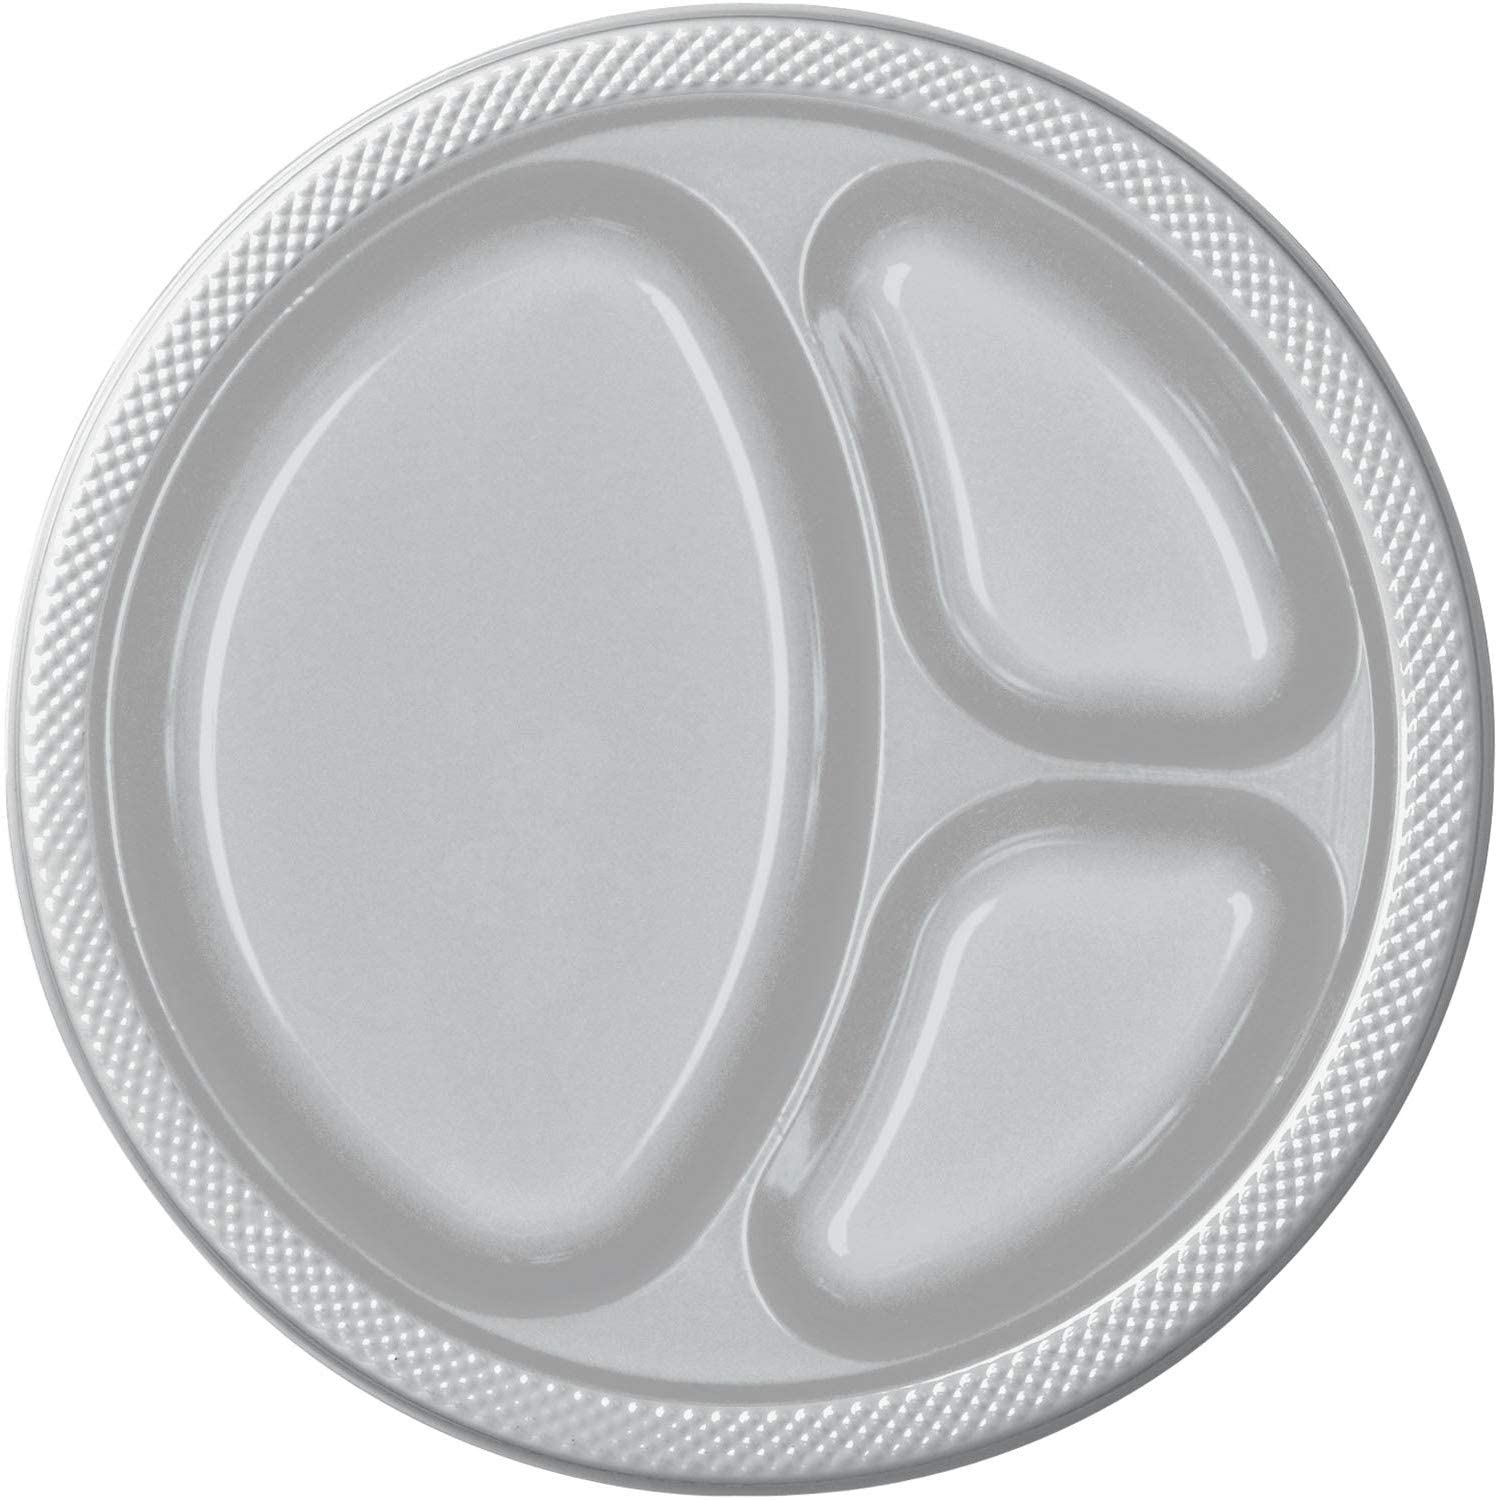 Amscan Silver Sparkle Divided Plastic Plates, 20 Ct. | Party Tableware